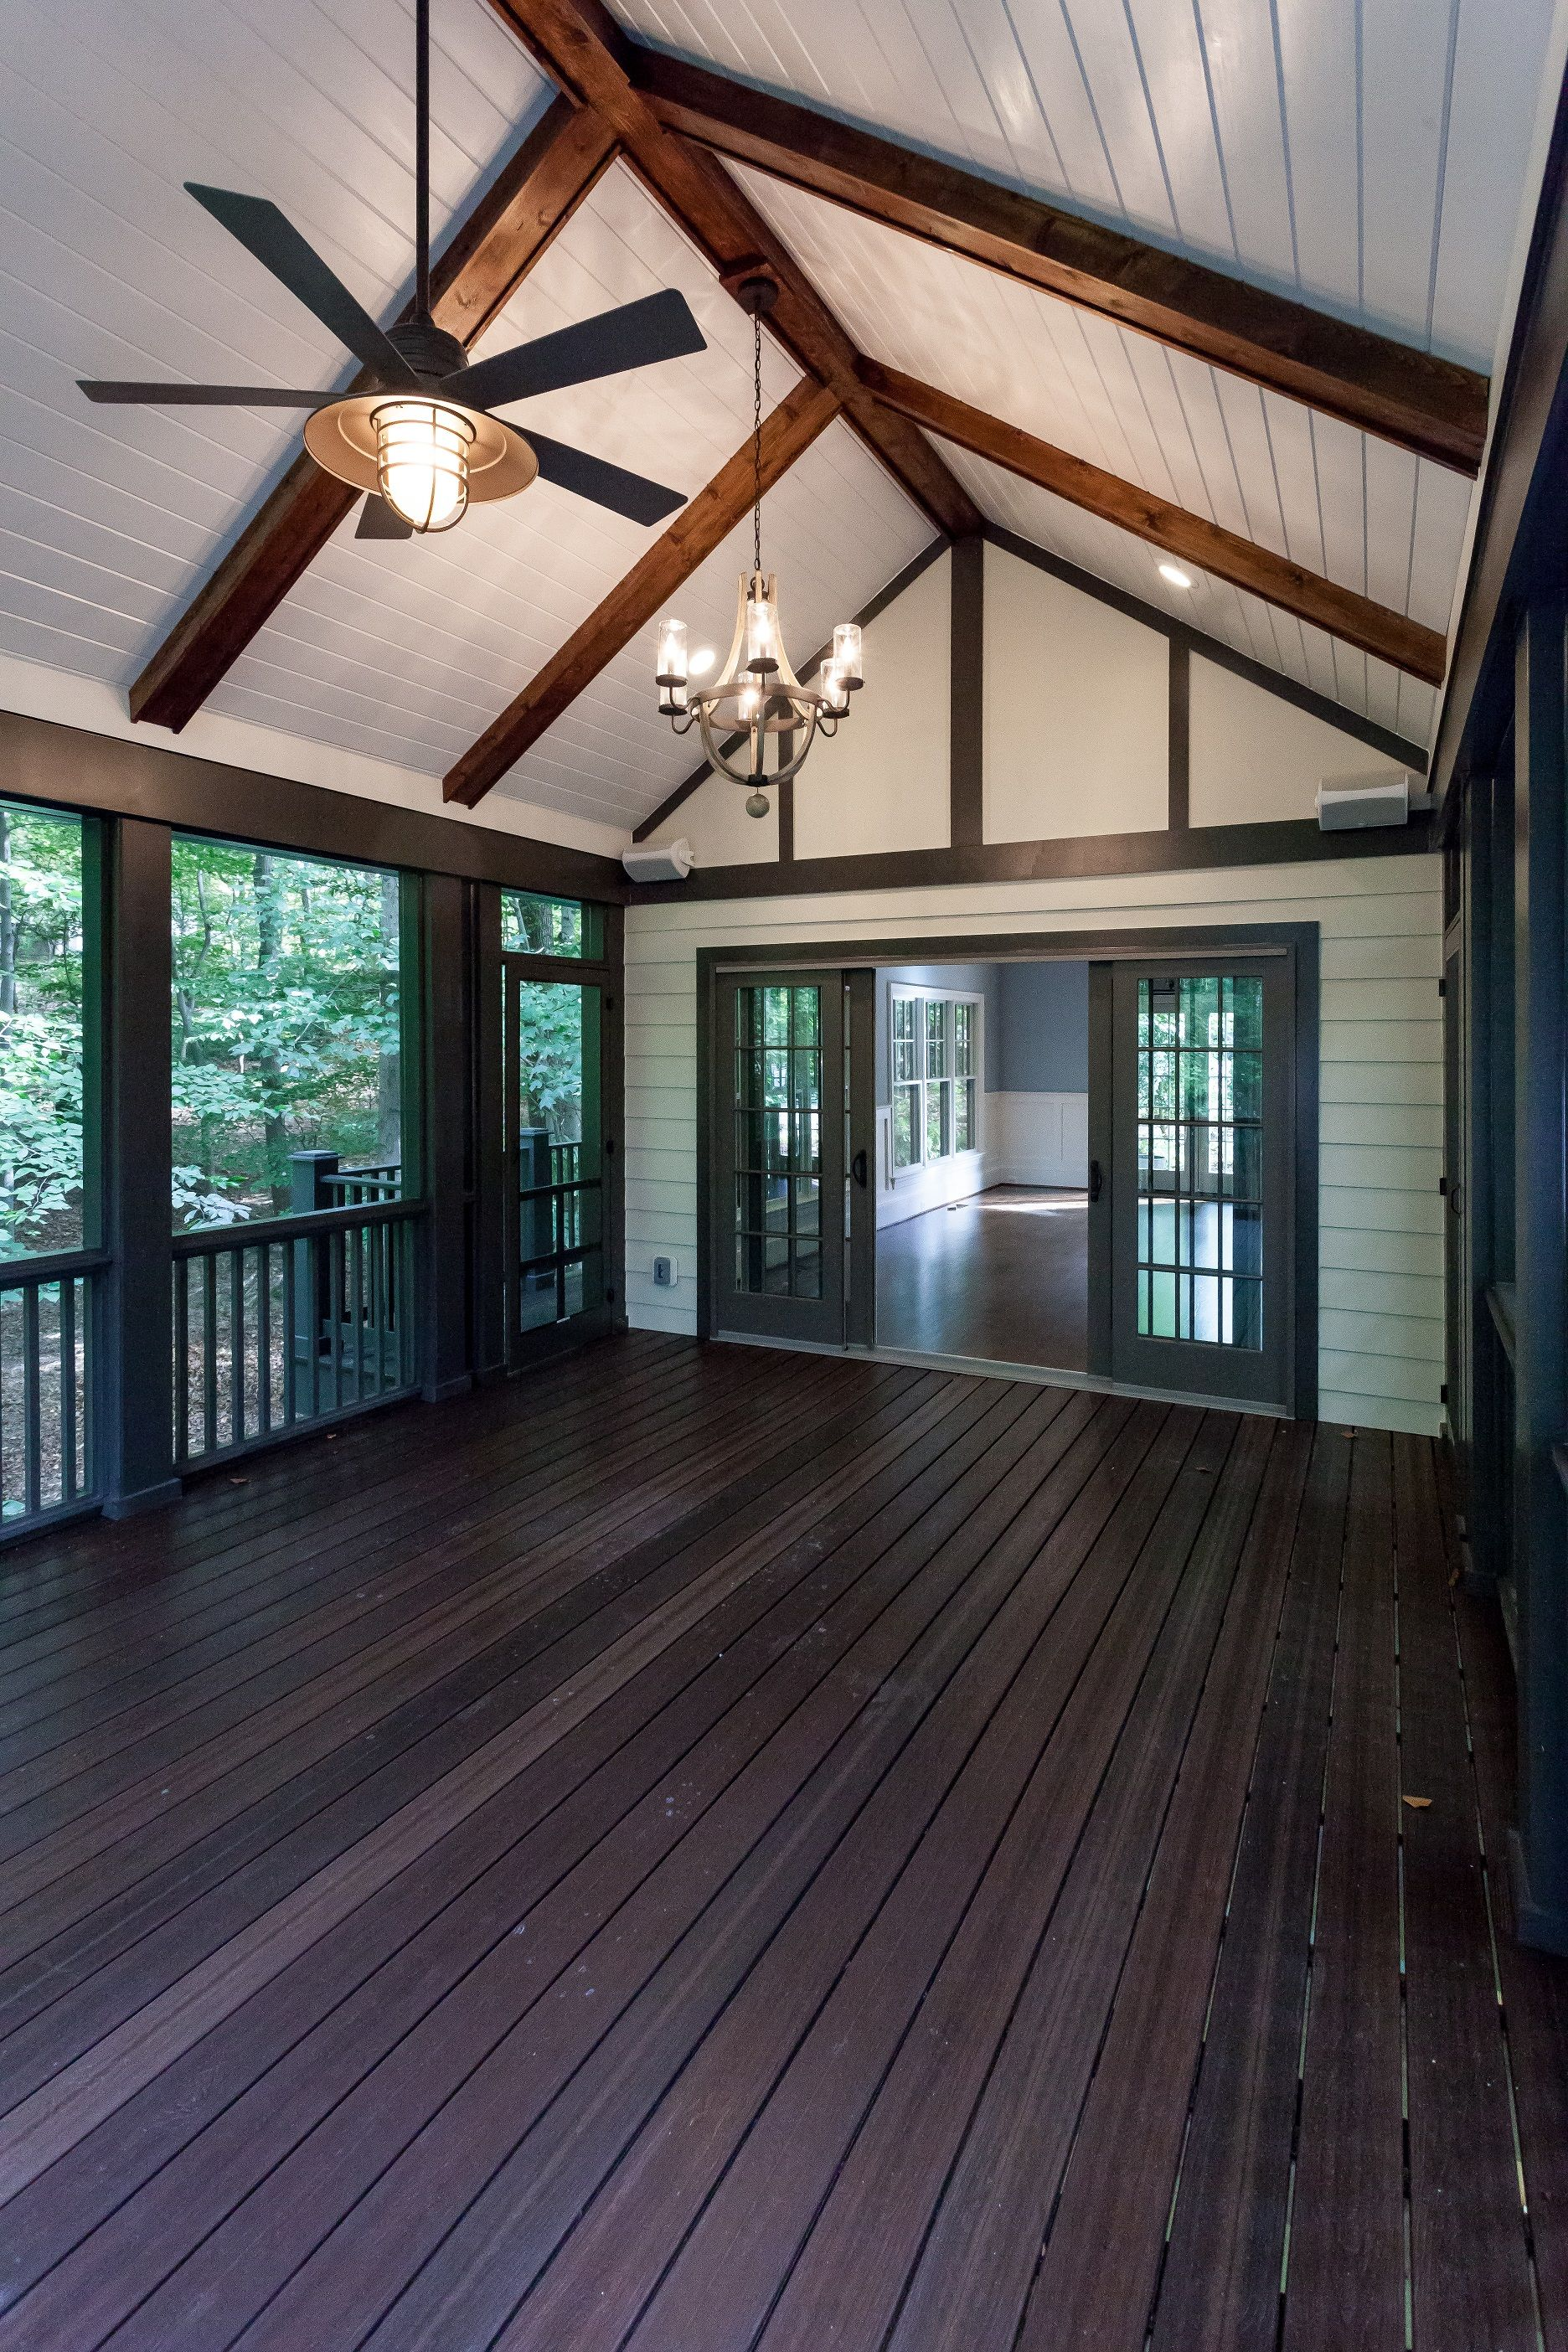 Vaulted Ceiling Screen Porch With White Painted Wood Ceiling And Stained Beams In Custom Tudor Home By Bcn Ho Porch Interior Painted Wood Ceiling Wood Ceilings